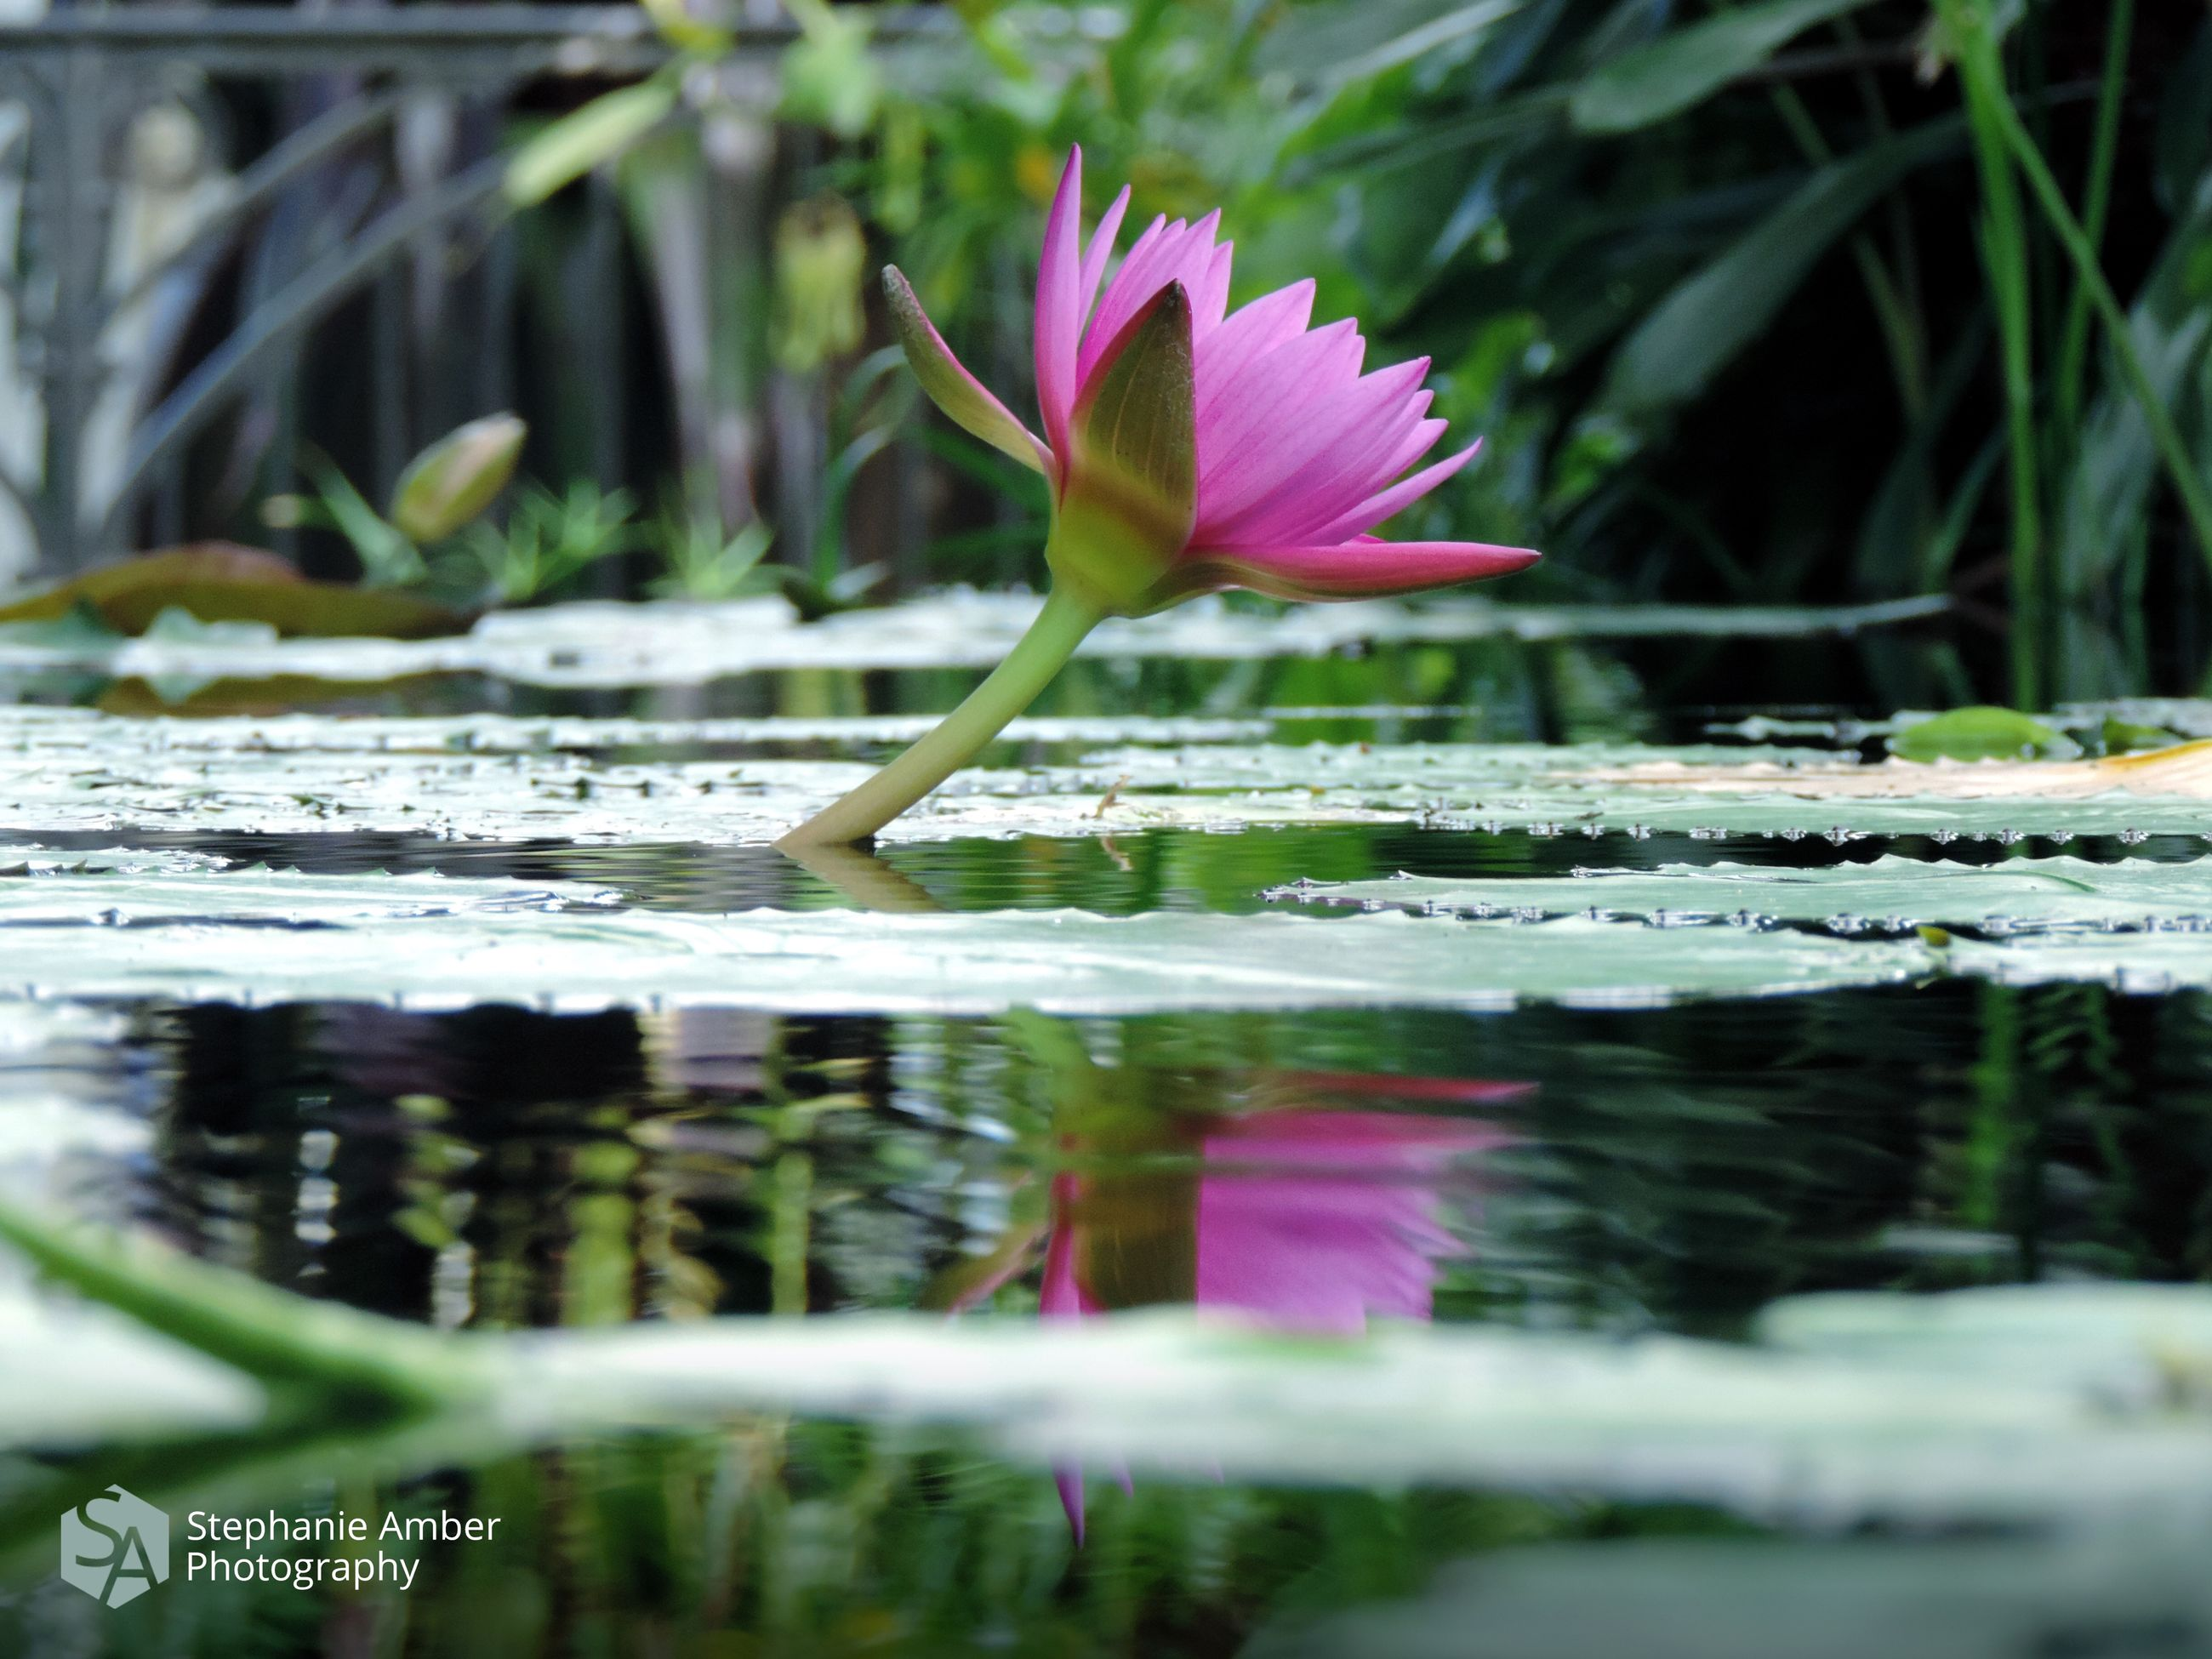 plant, flower, beauty in nature, flowering plant, freshness, growth, vulnerability, fragility, lake, water, nature, water lily, selective focus, close-up, pink color, leaf, reflection, petal, day, no people, flower head, outdoors, purple, floating on water, lotus water lily, purity